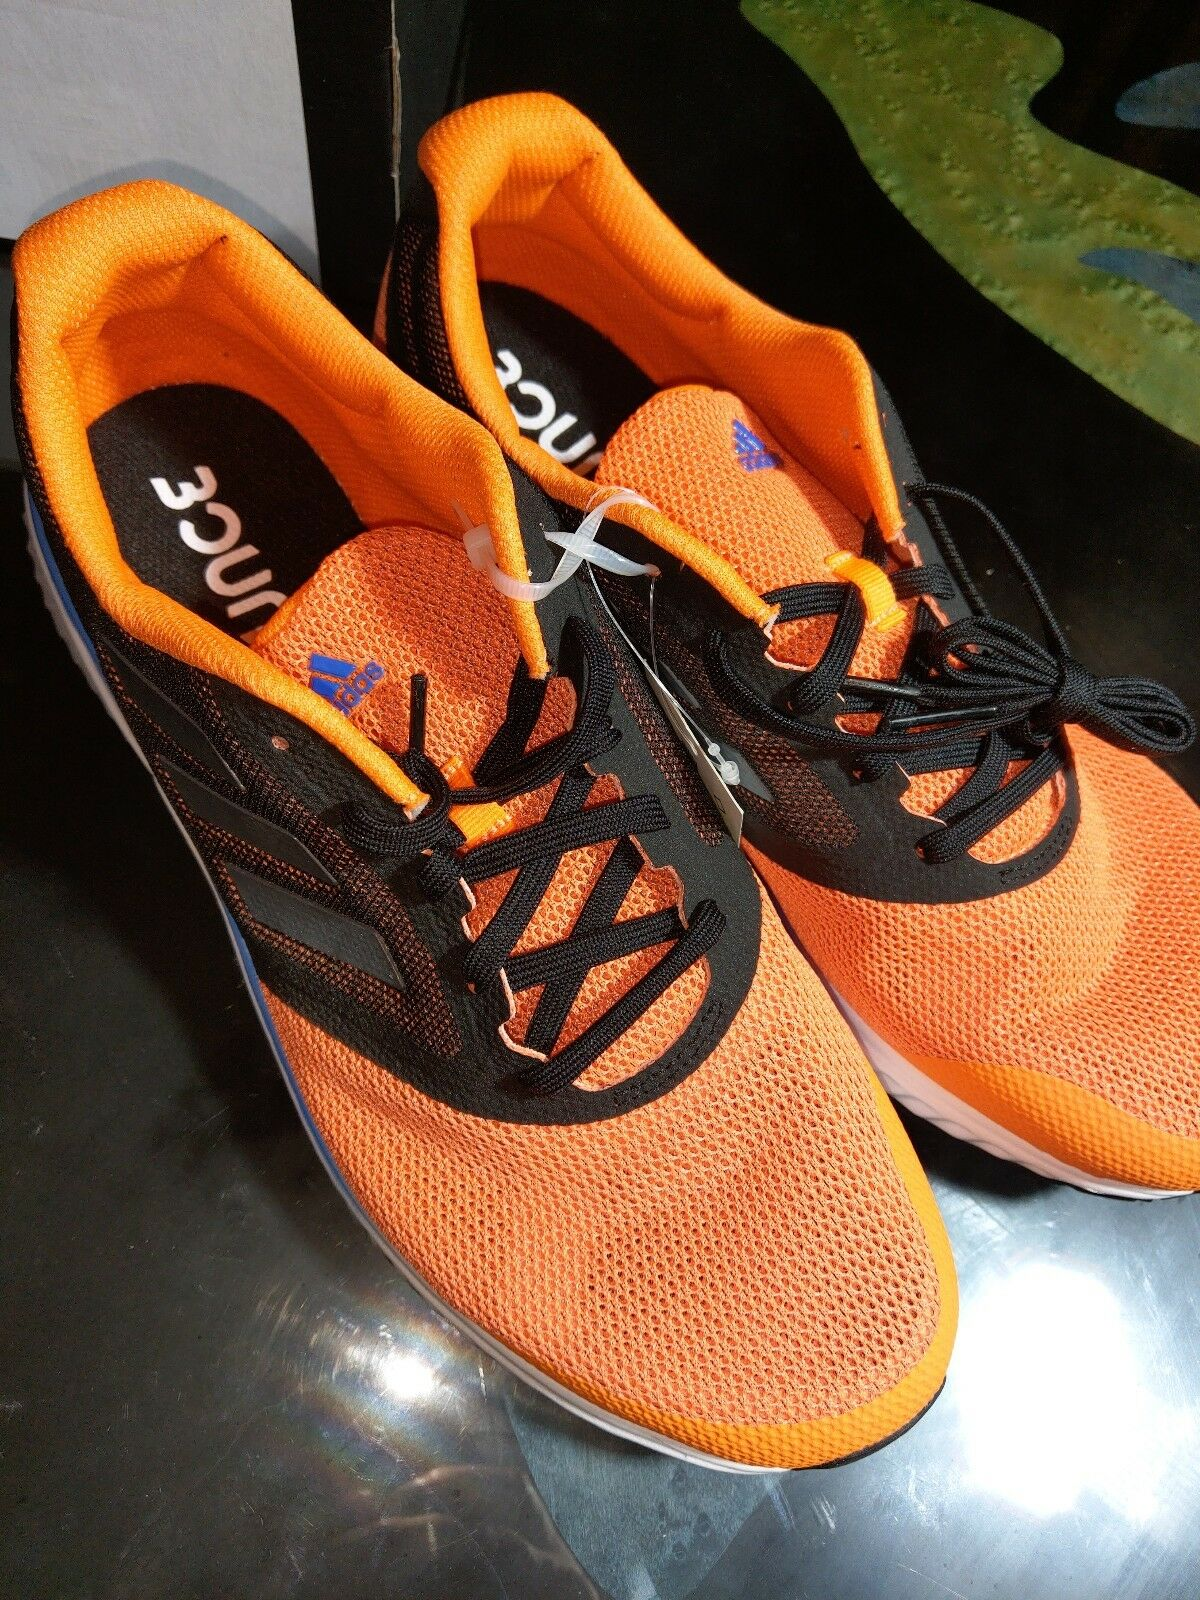 NEWAdidas CG5567 EDGE RC SNEAKERS SHOES SIZE SIZE SIZE 10.5  Running shoes orange orange 07d328